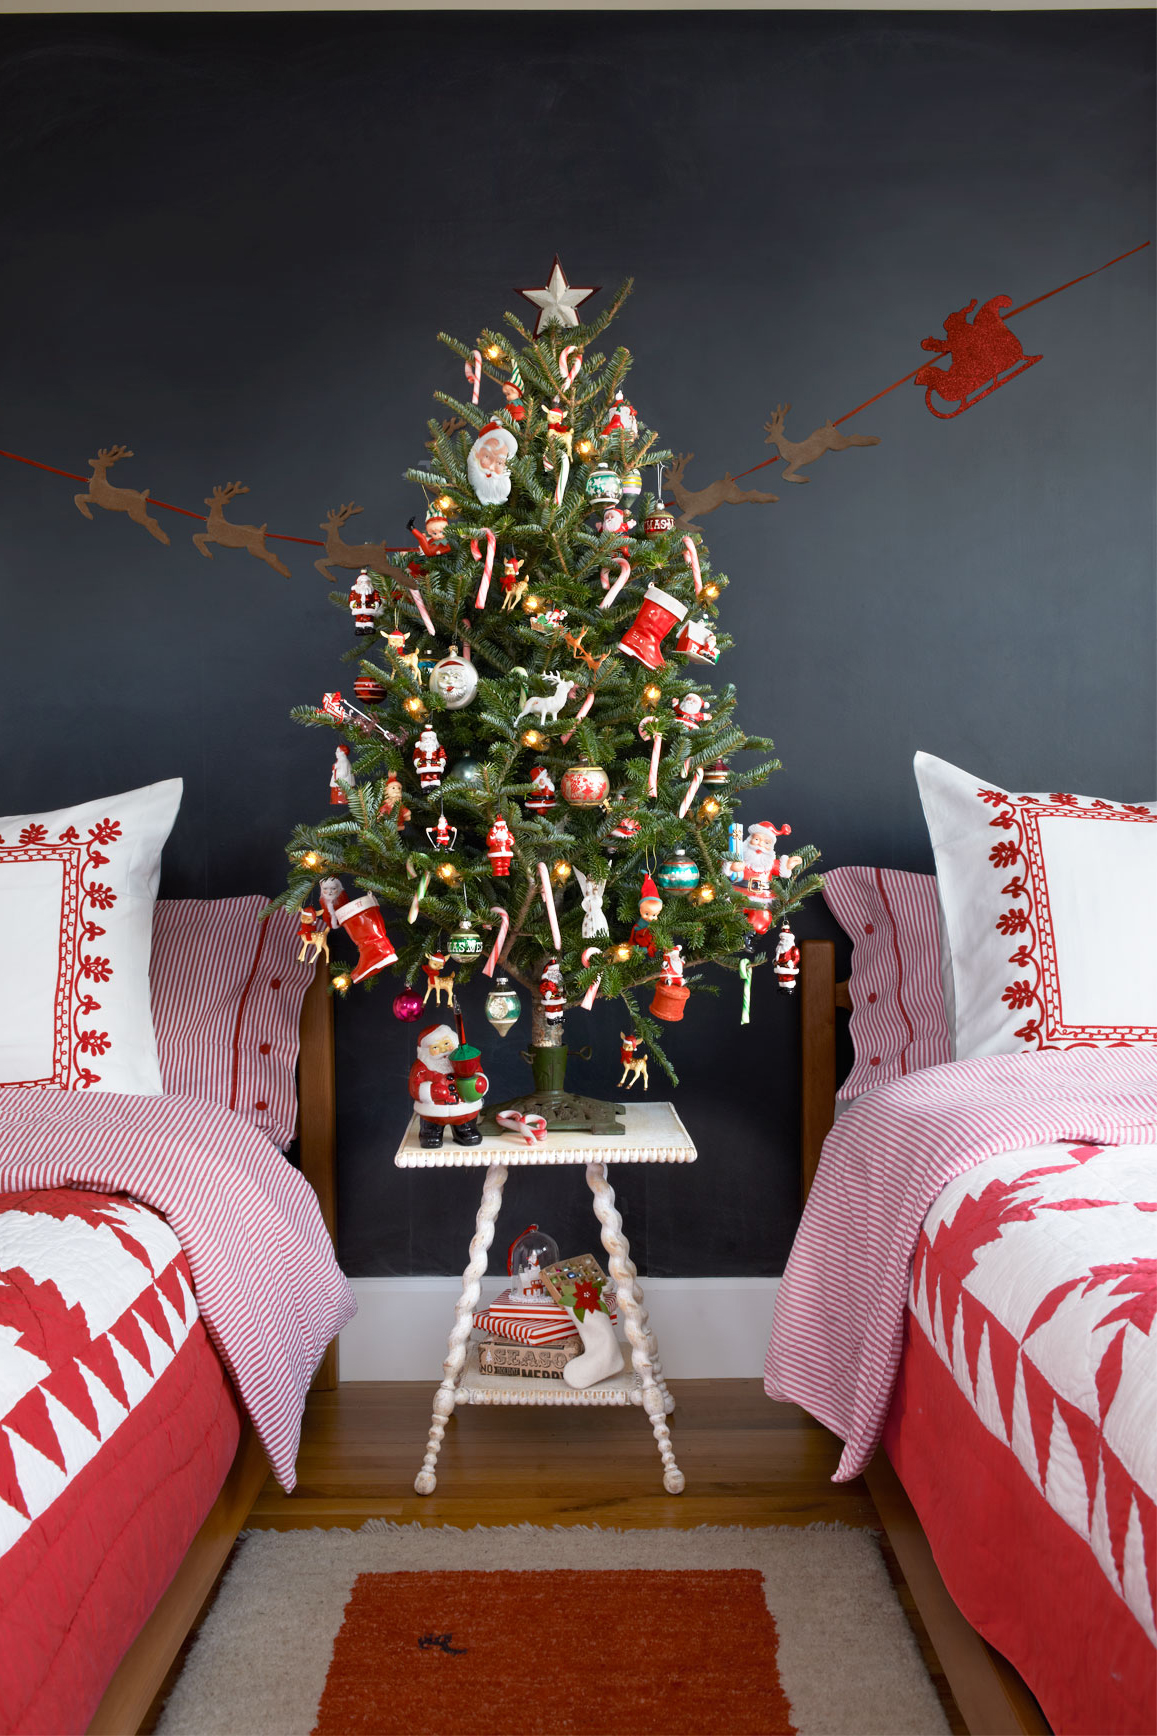 Non traditional christmas tree ideas - Non Traditional Christmas Tree Ideas 53